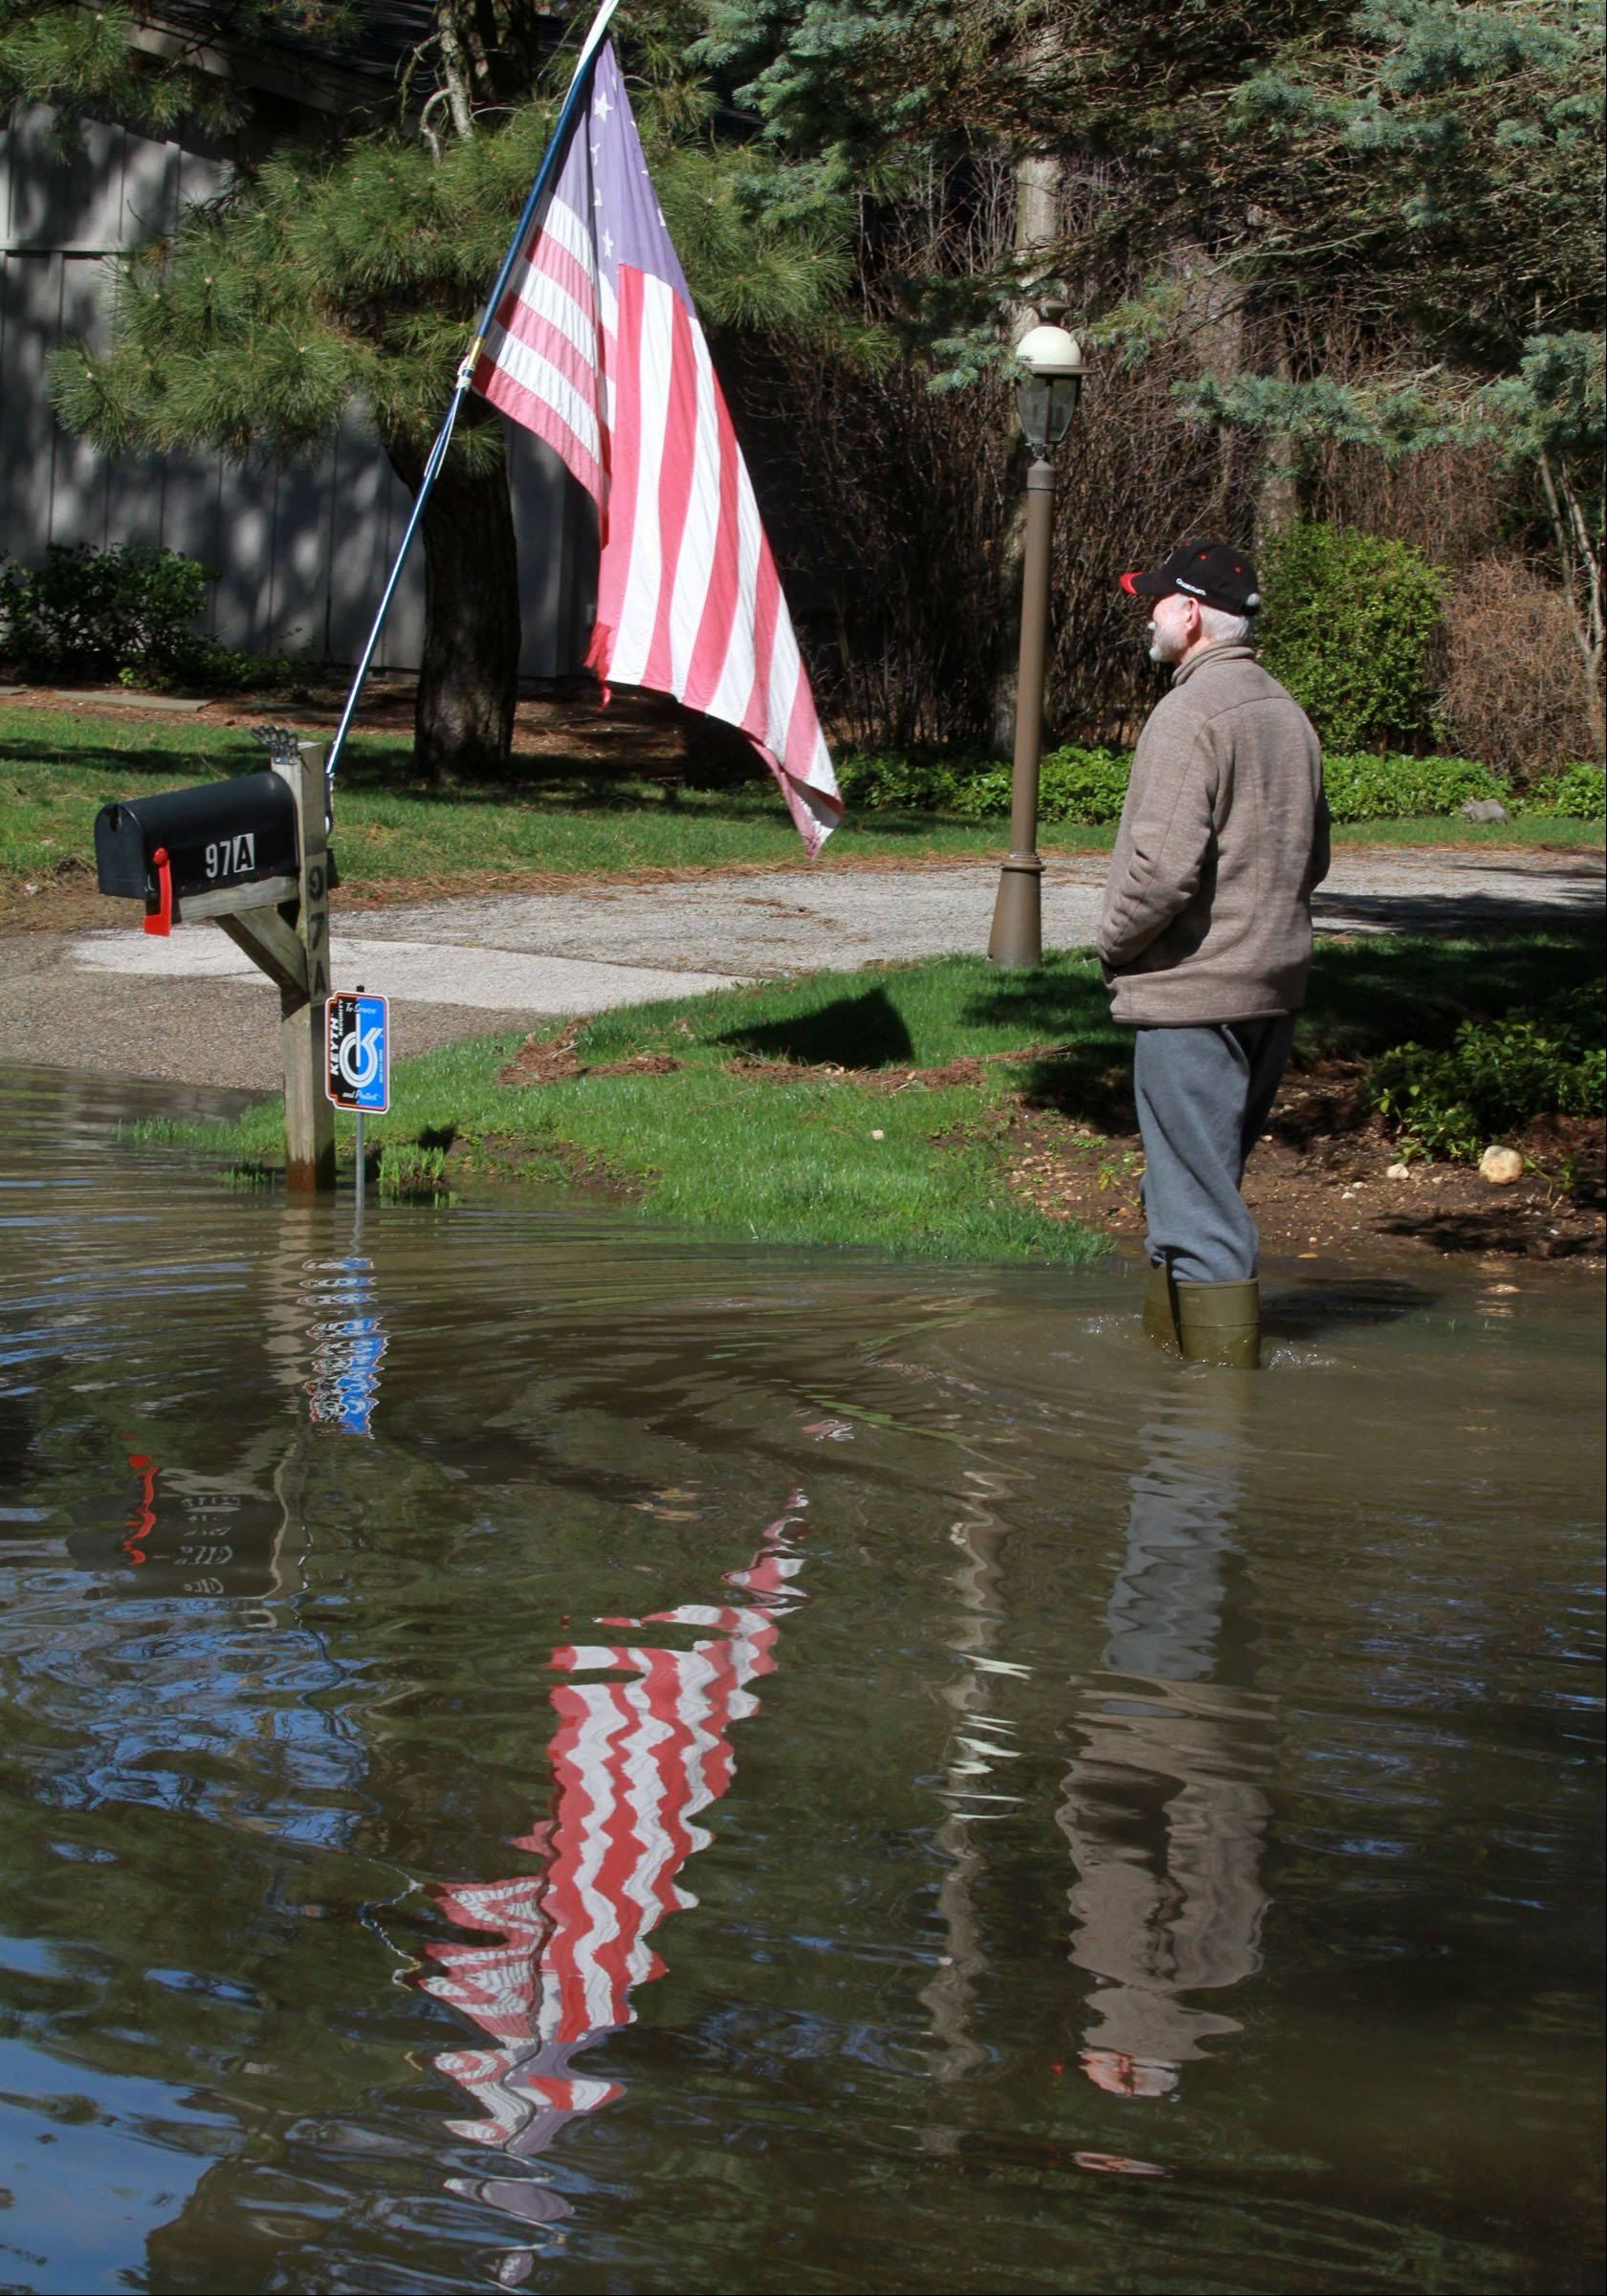 George LeClaire/gleclaire@dailyherald.com Rich Sanders walks back to his house on Lincolnshire Way in Lincolnshire after checking the water level at the end of the block and turning back on Saturday, April 20, 2013. Rich said his house did not get any water.